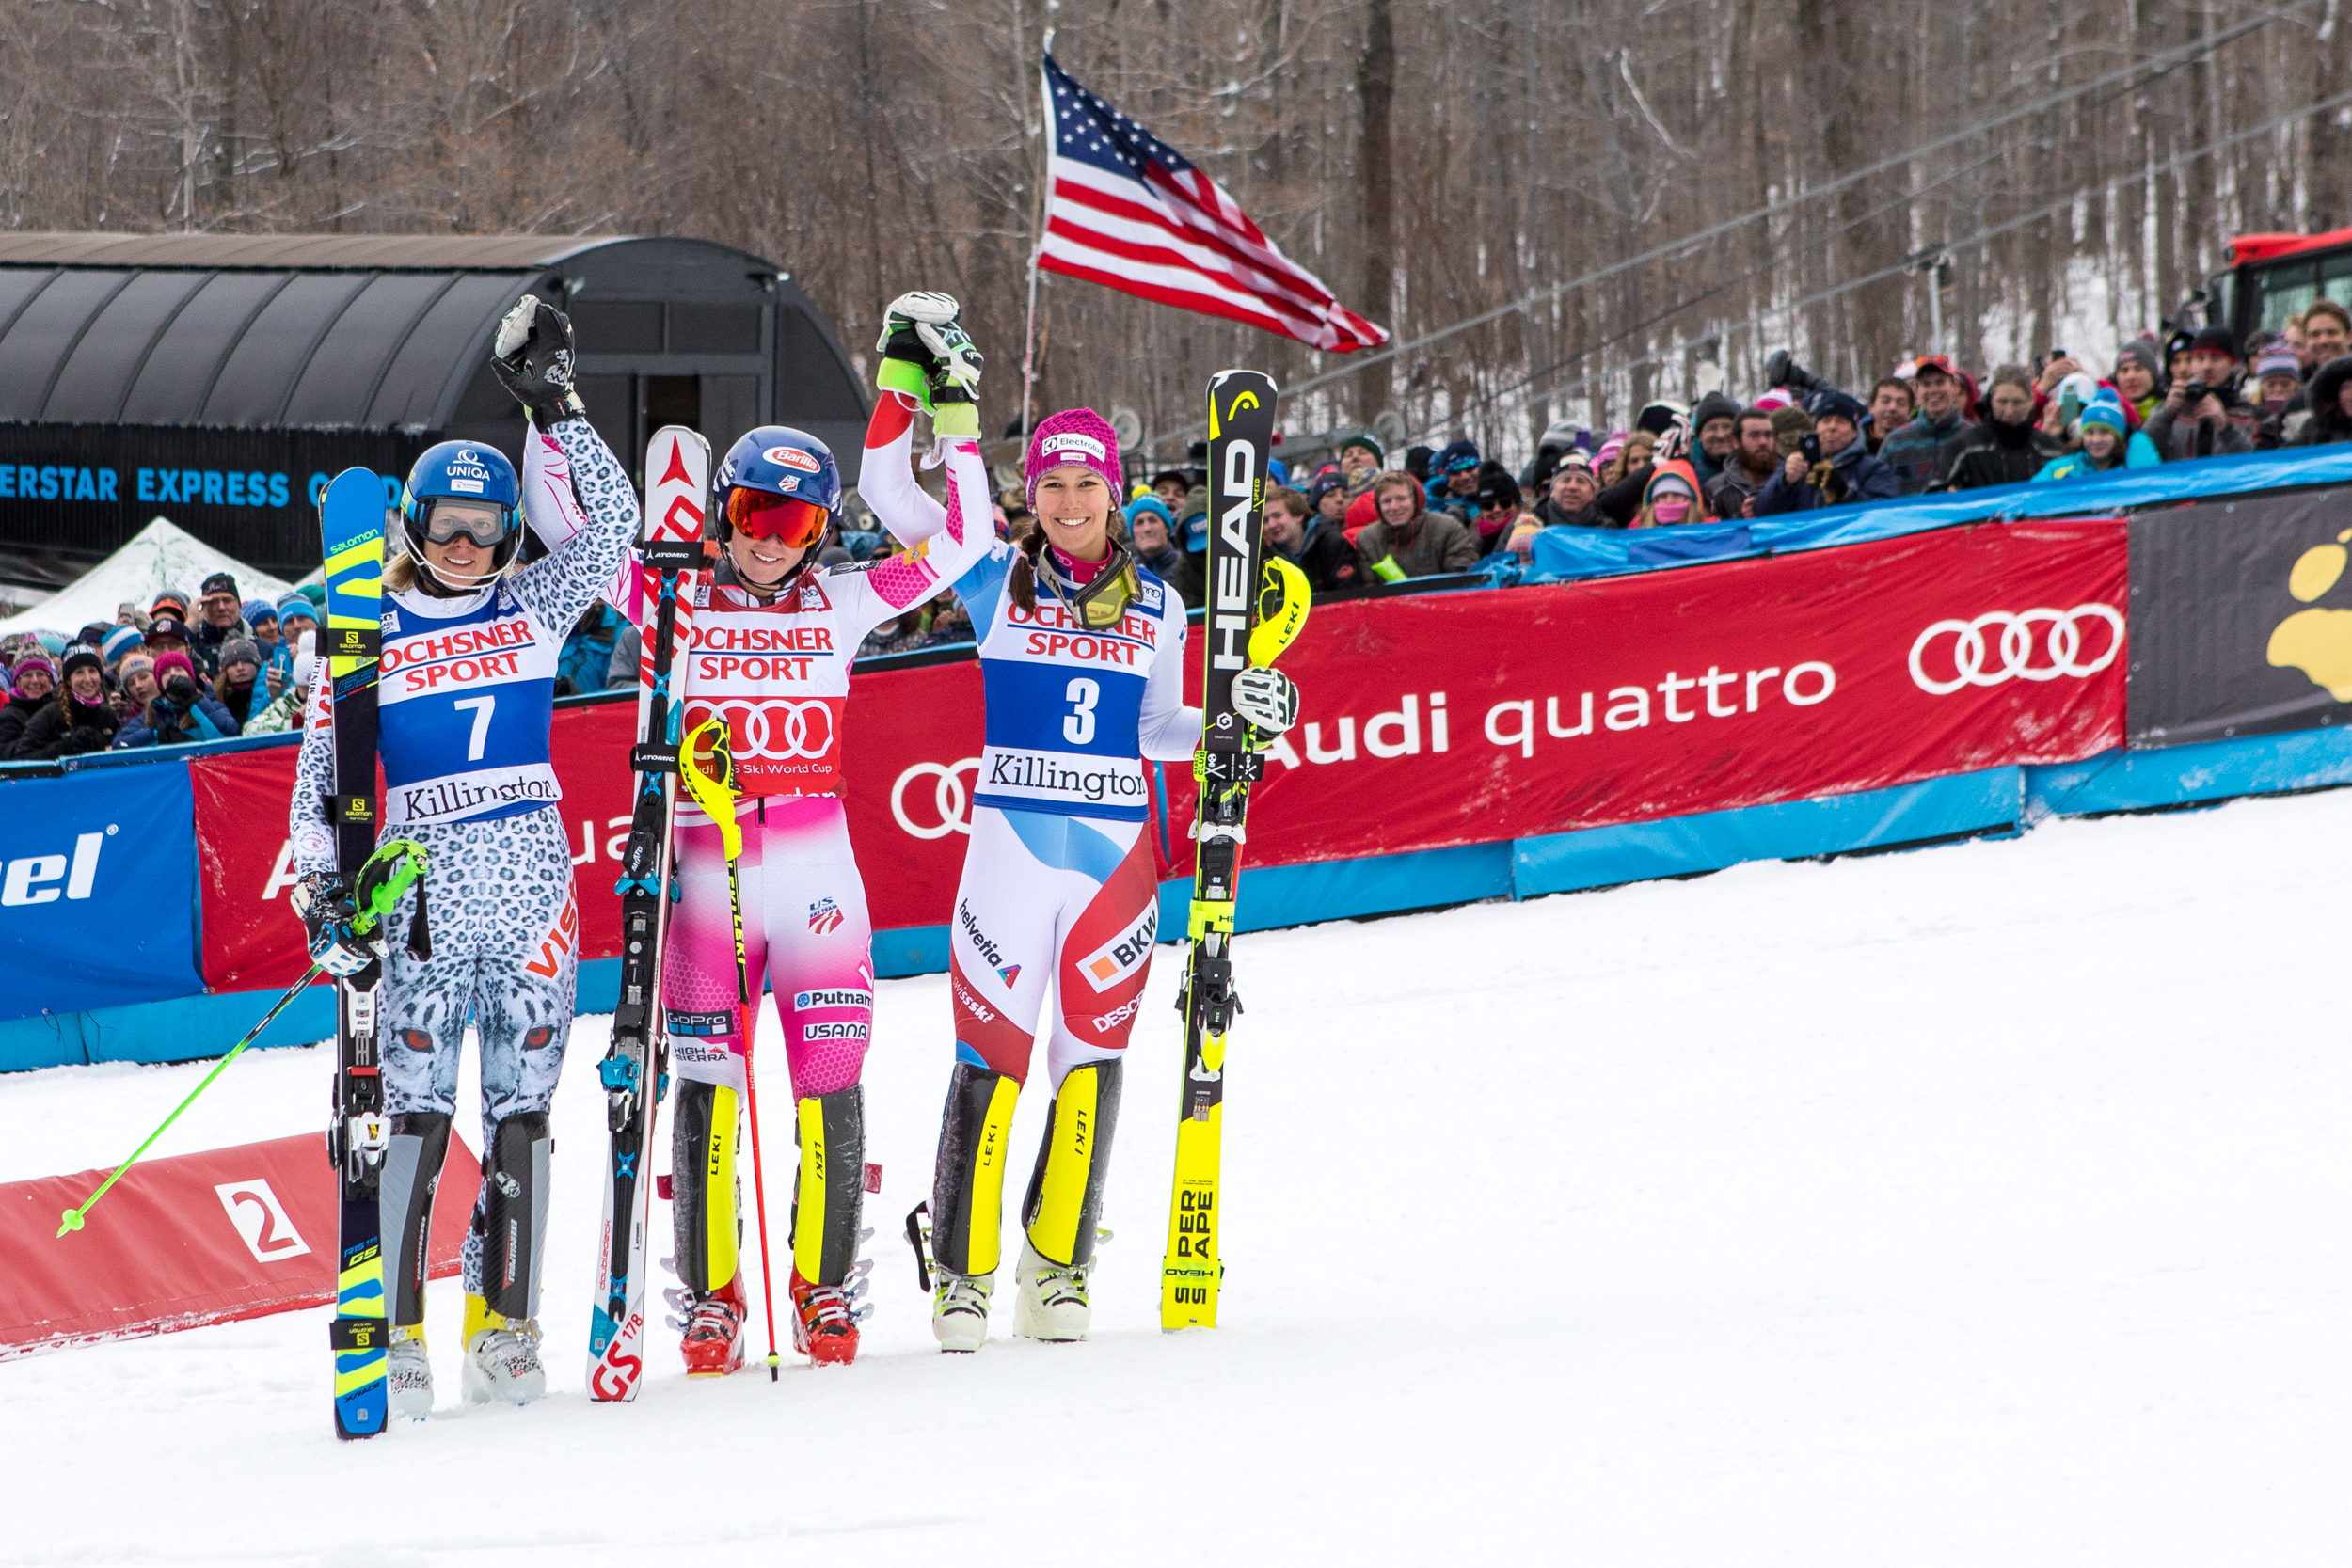 Killington-World-Cup-SL-Podium.jpg